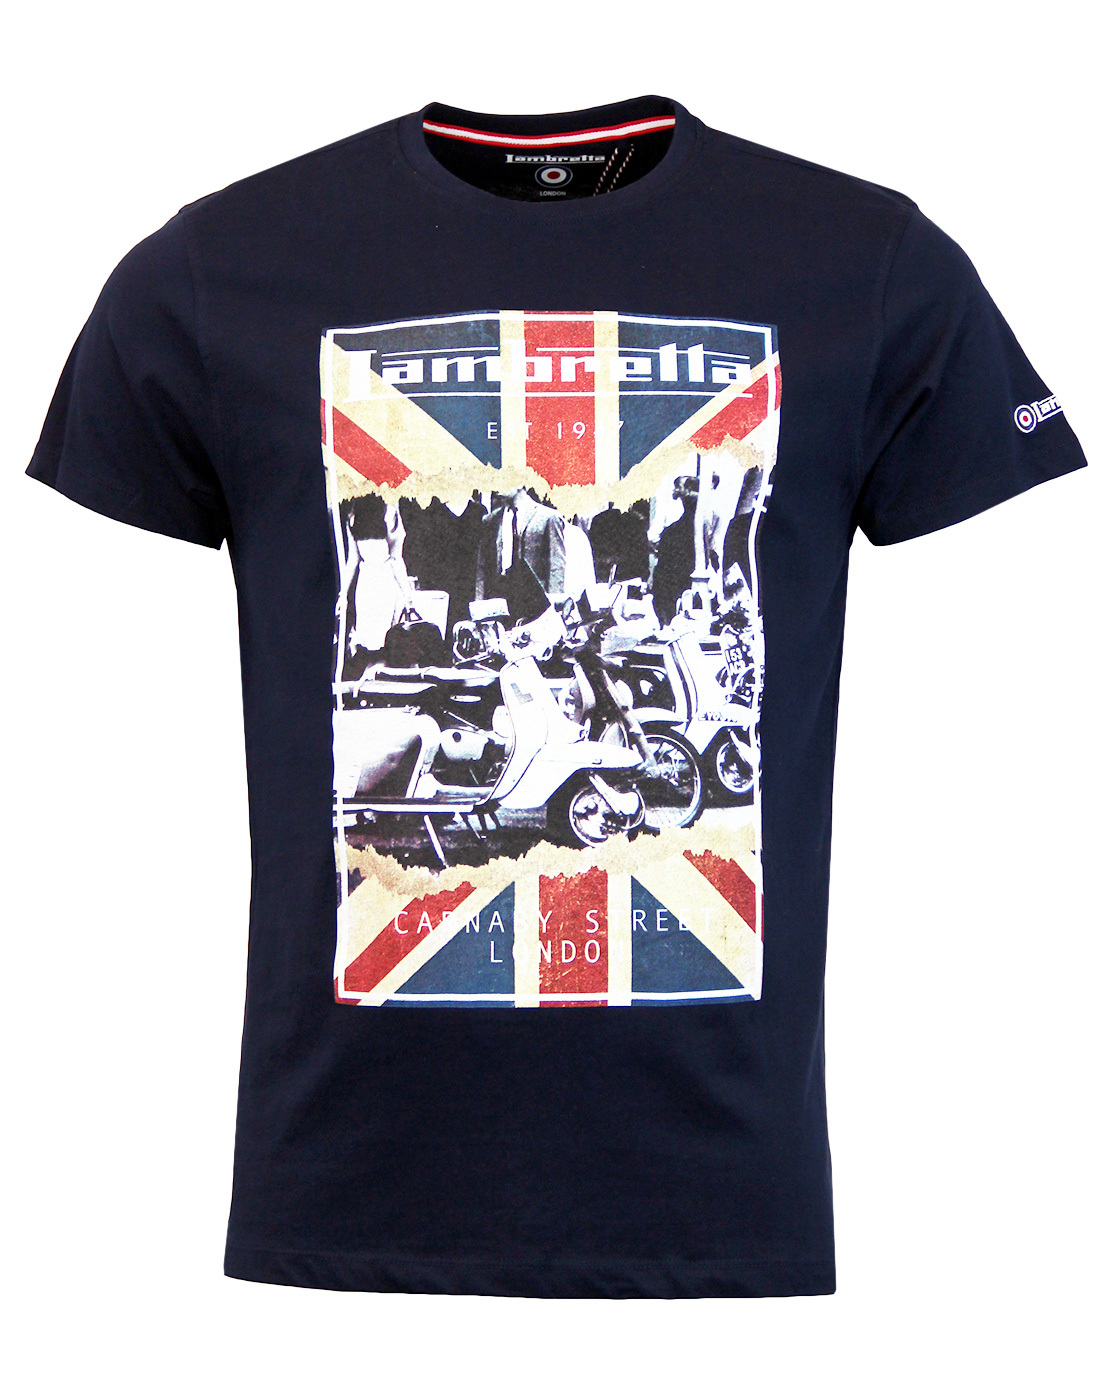 04501fe5c15 LAMBRETTA Mens Scooter Union Jack Mod Poster Tee in Navy